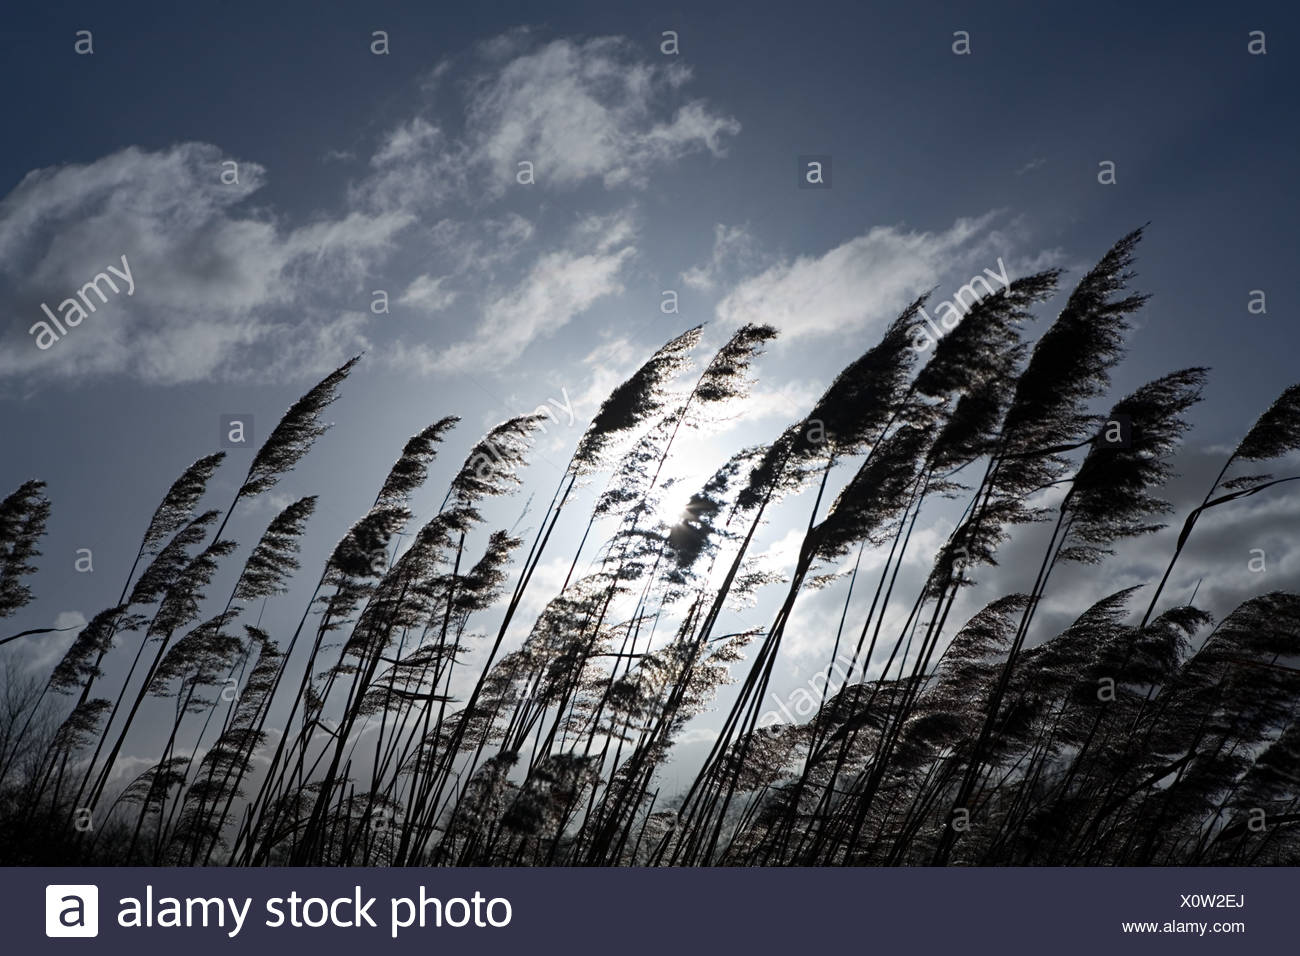 Grass blowing in breeze - Stock Image